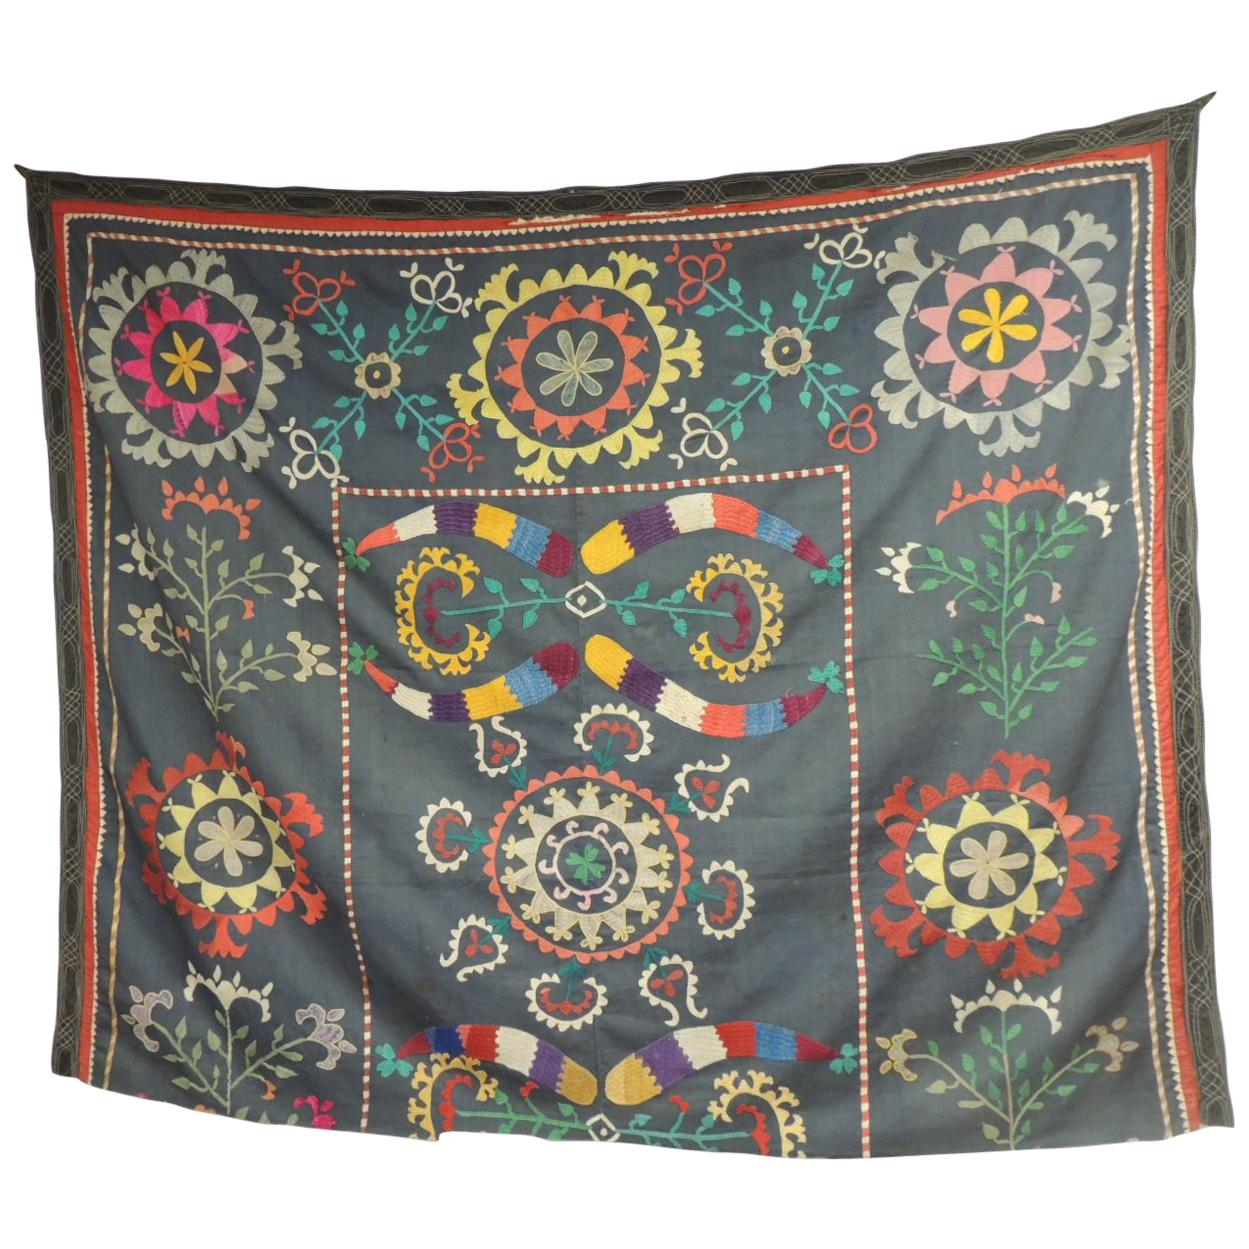 Large Colorful Floral Embroidered Vintage Suzani Panel